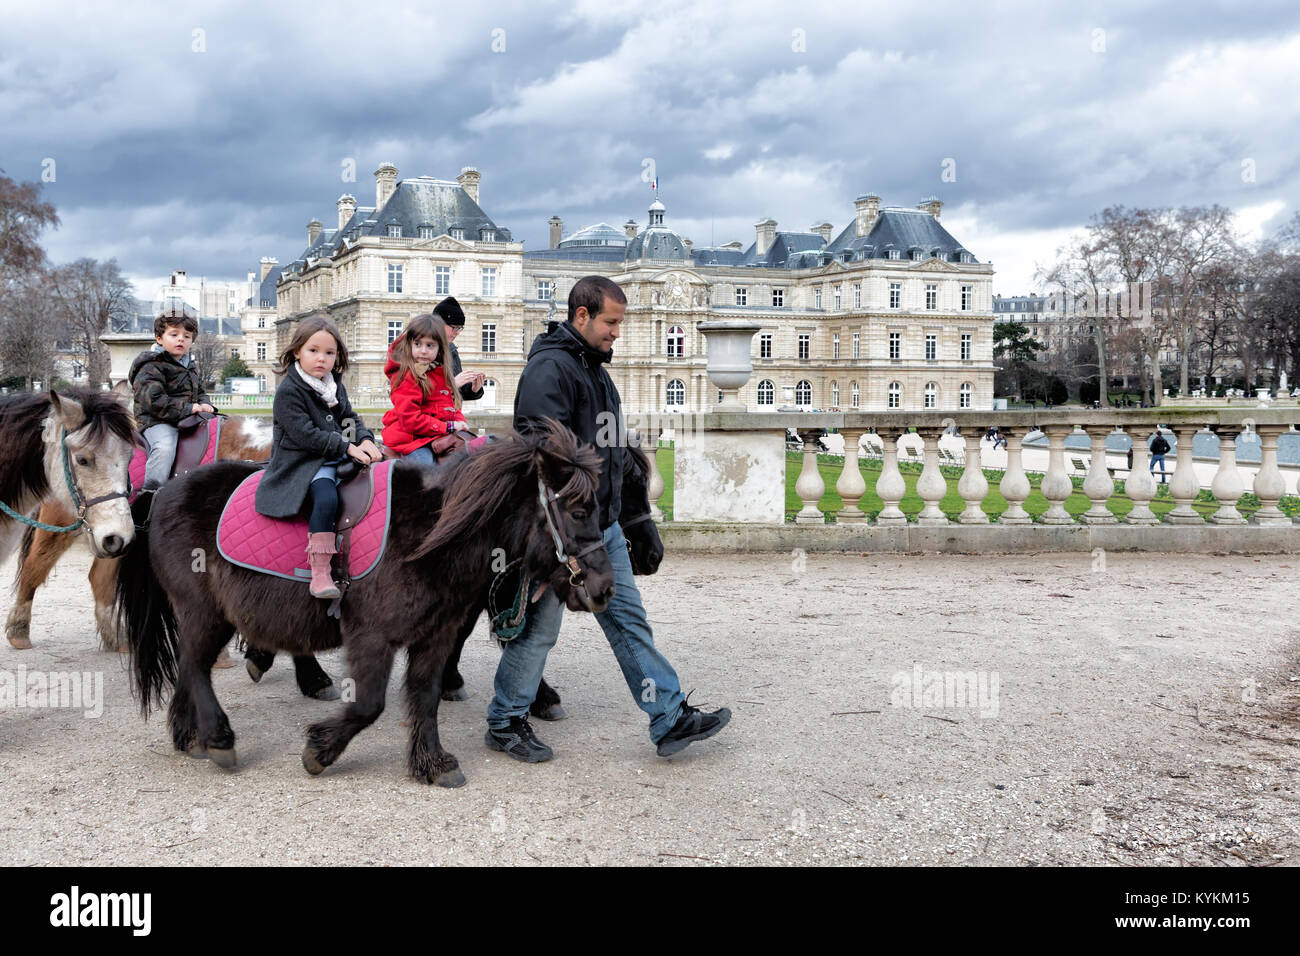 PARIS-JAN 4, 2014:Unidentified kids ride ponies at the Luxembourg Gardens, a popular activity for young visitors Stock Photo